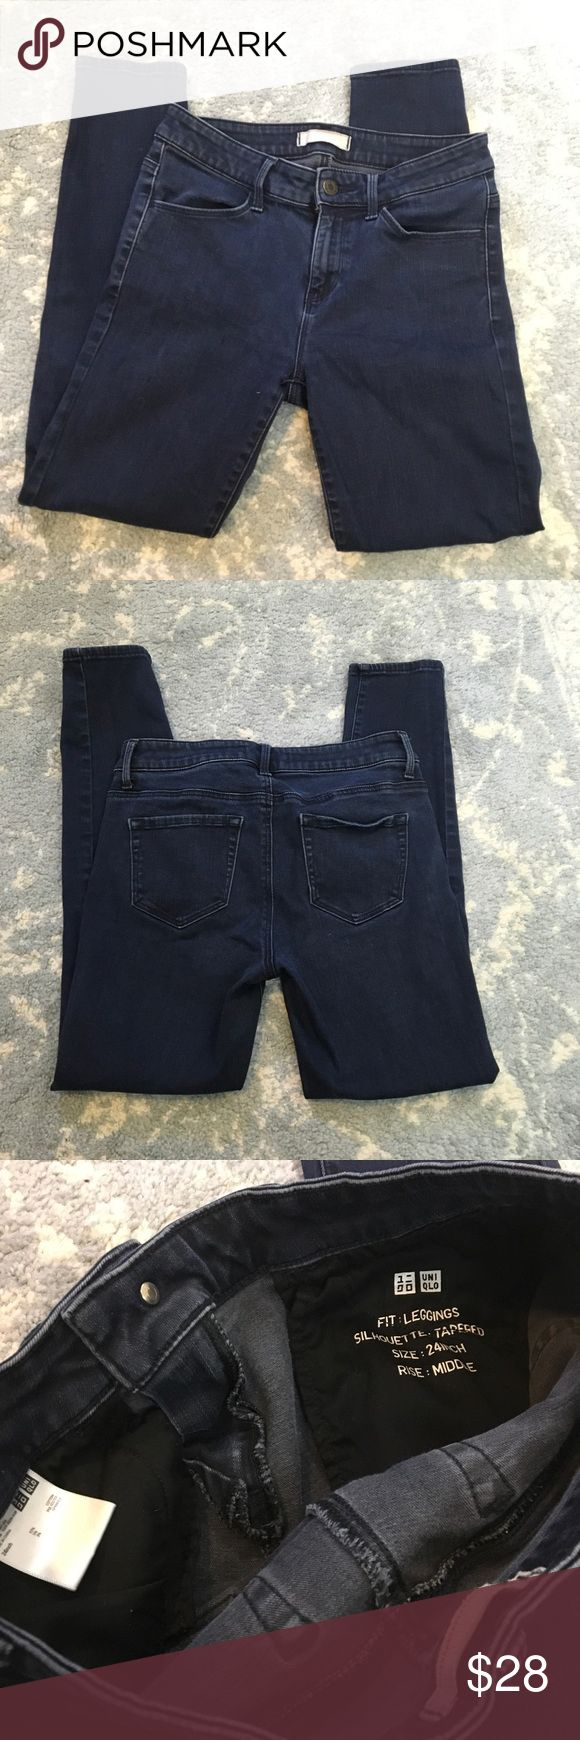 Uniqlo Legging Demin Cropped Jeans Cute jeans size 24 and are lightly worn! Uniqlo Jeans